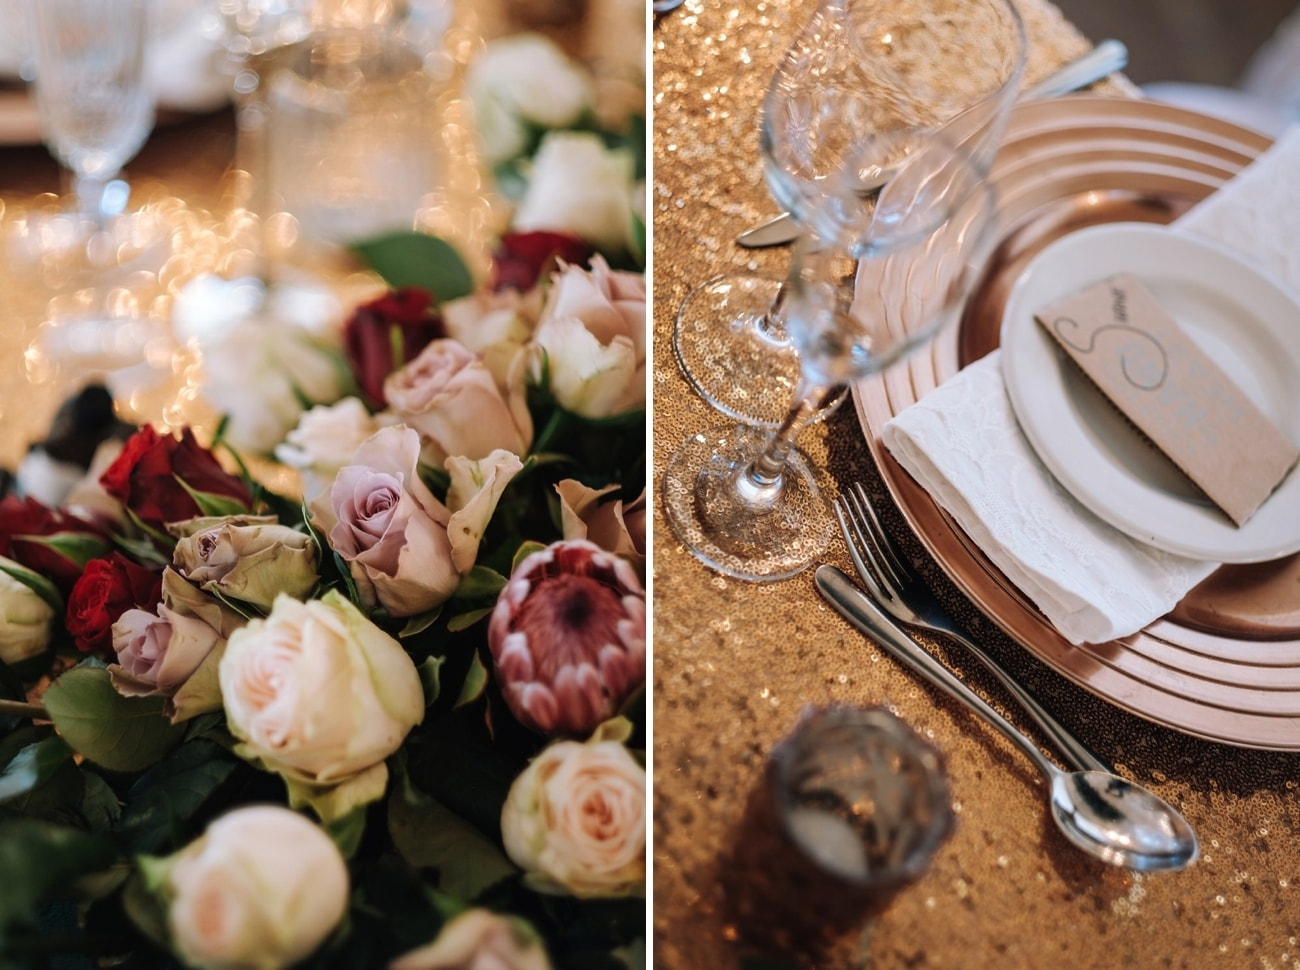 Winter Wedding with Two Gorgeous Gowns Decor | Image: The Shank Tank